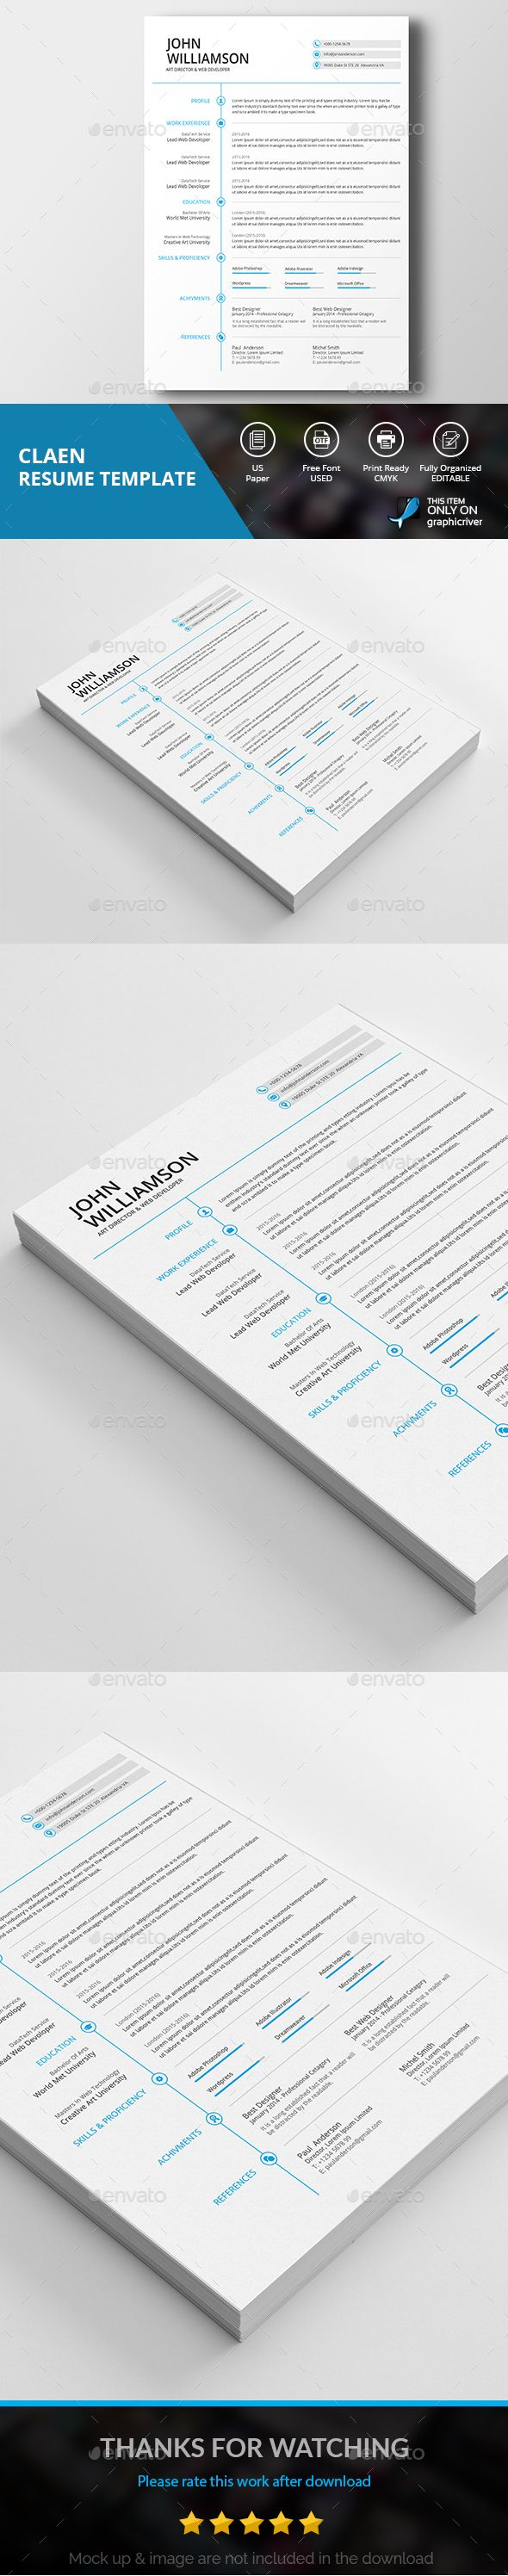 Resume u0026 Cover Letter 379 best Resume